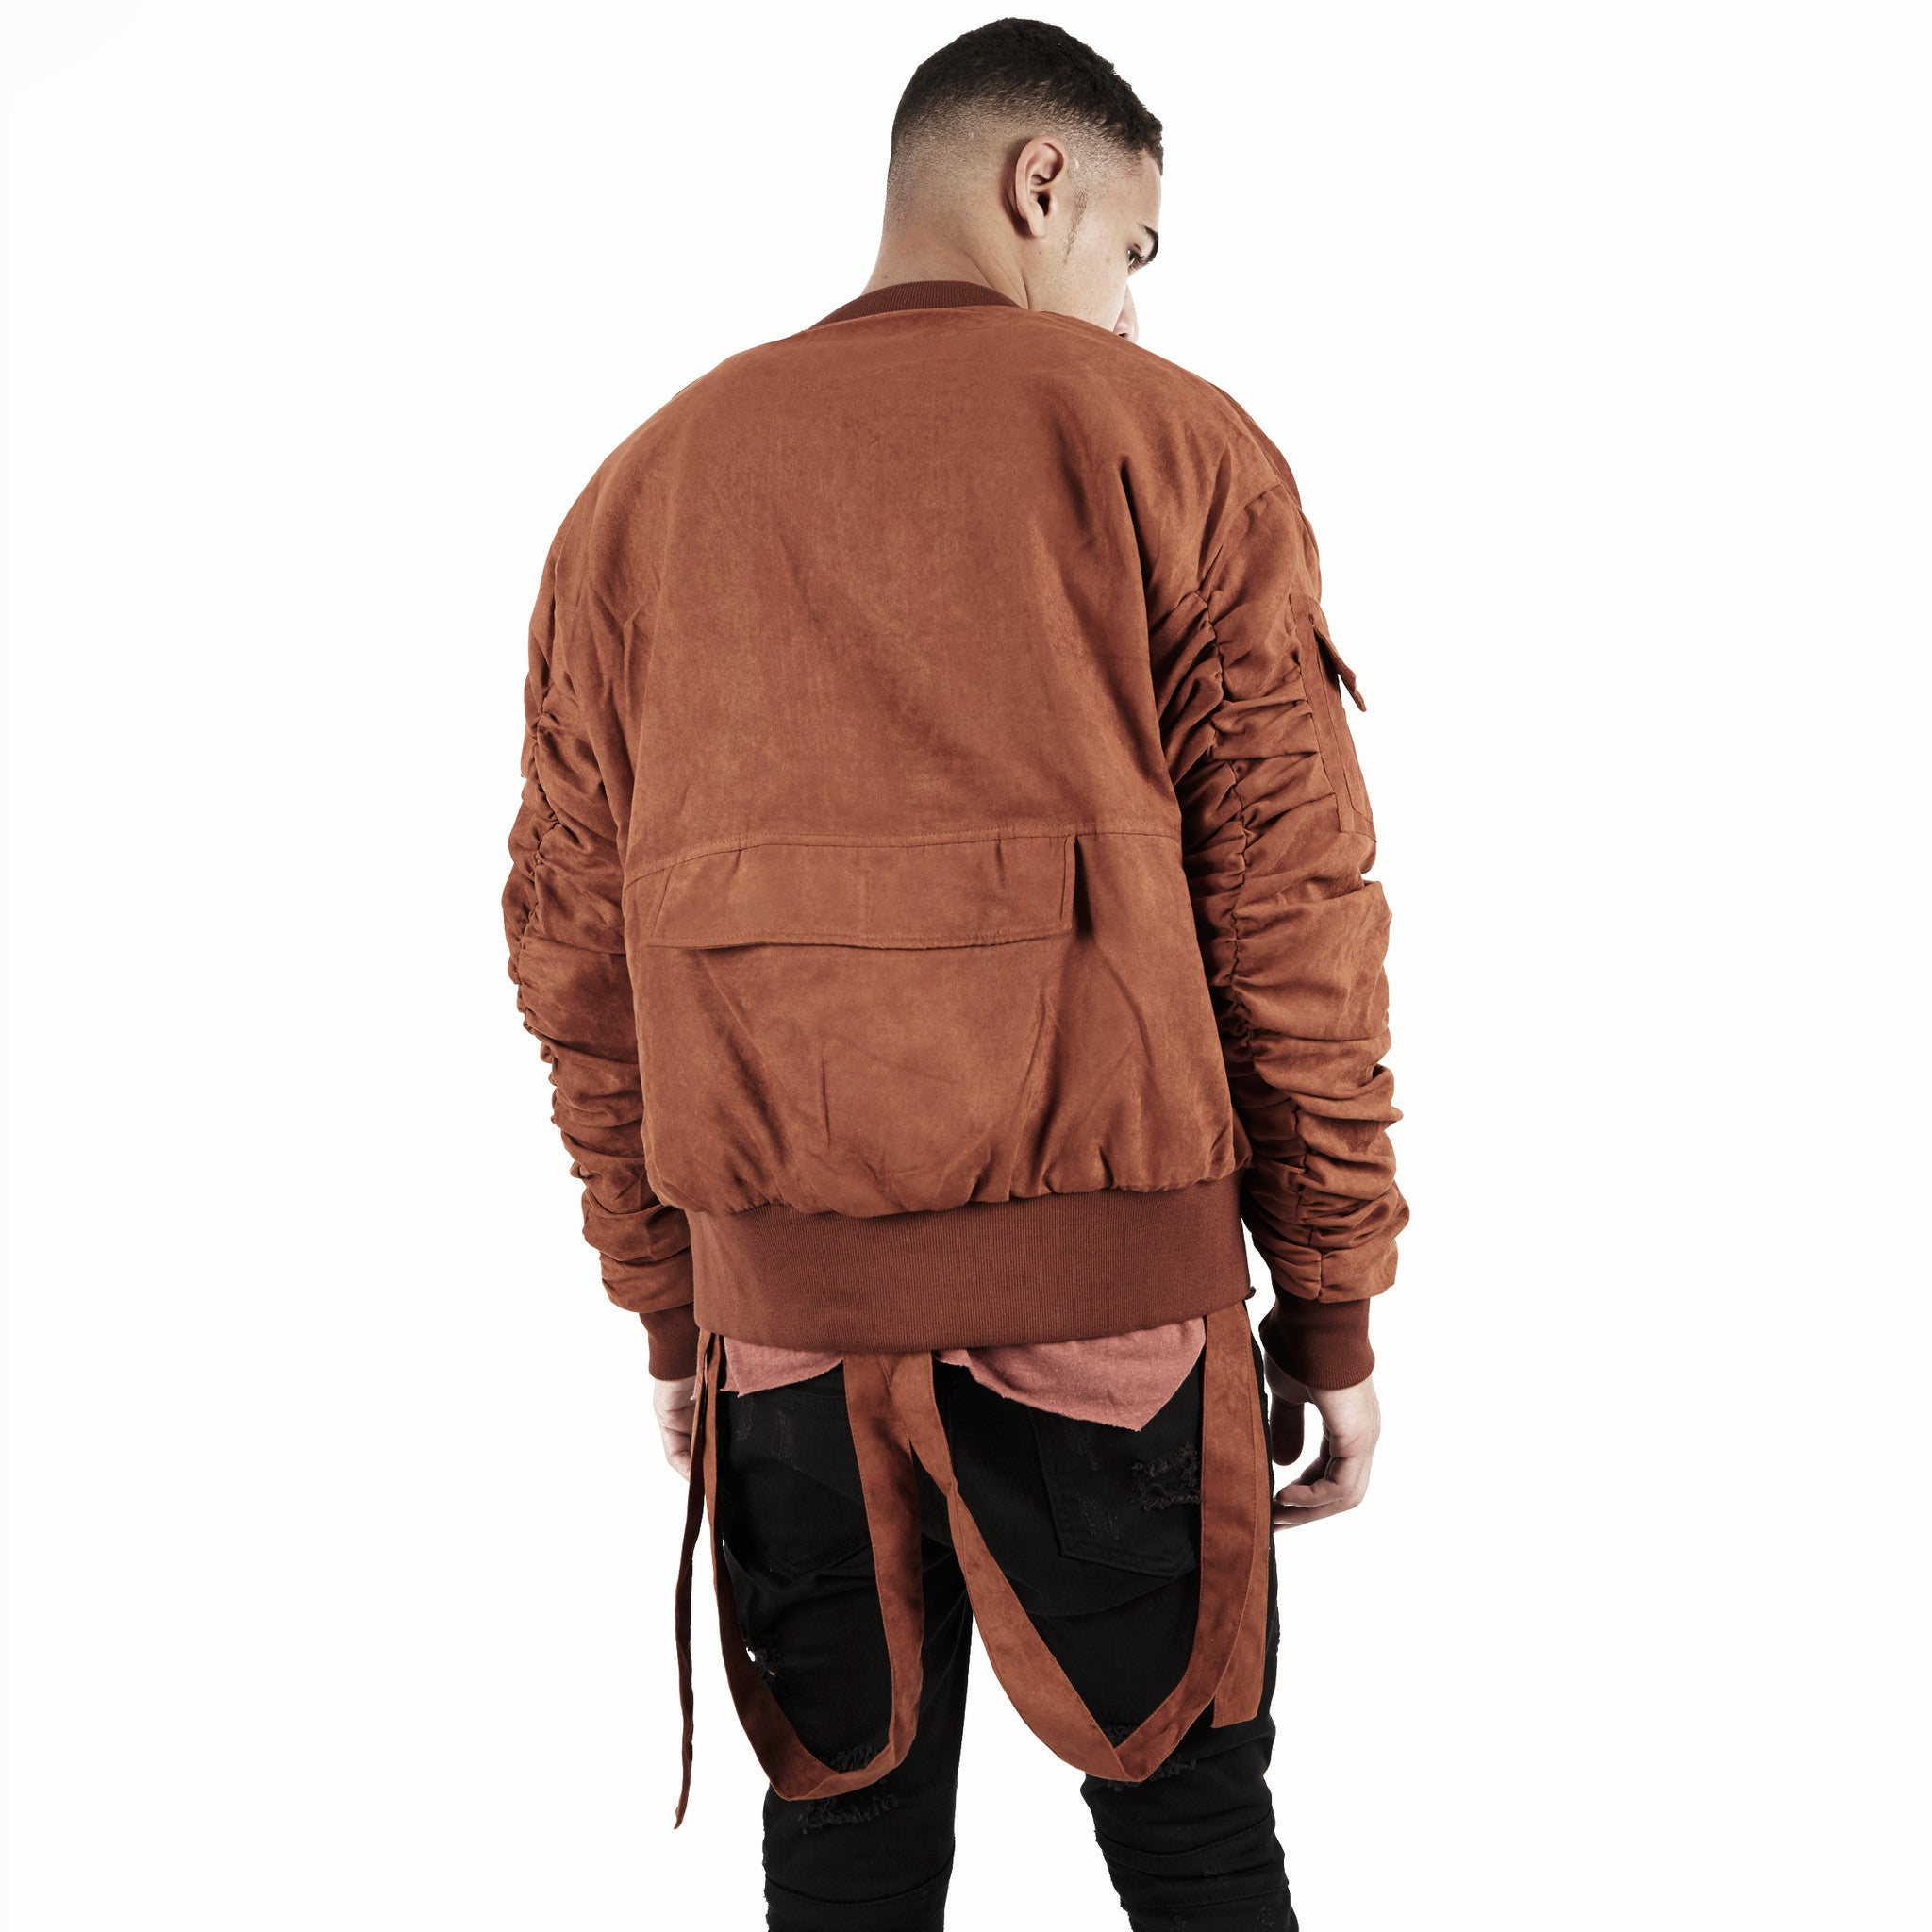 JK264 Suede Strapped Bomber Jacket - Rust - underated london - underatedco - 6